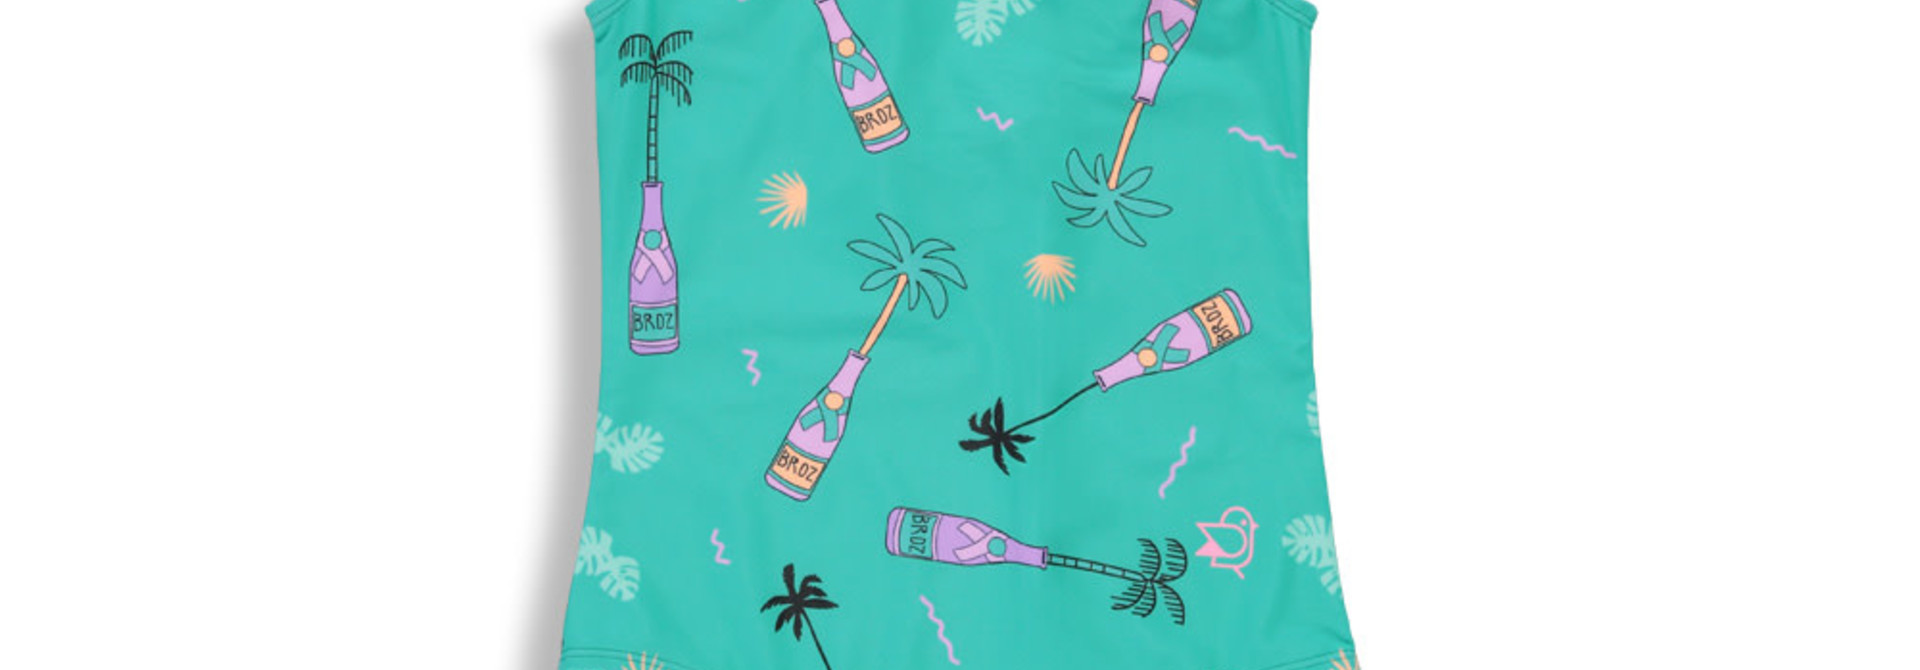 Maillot - Champagne